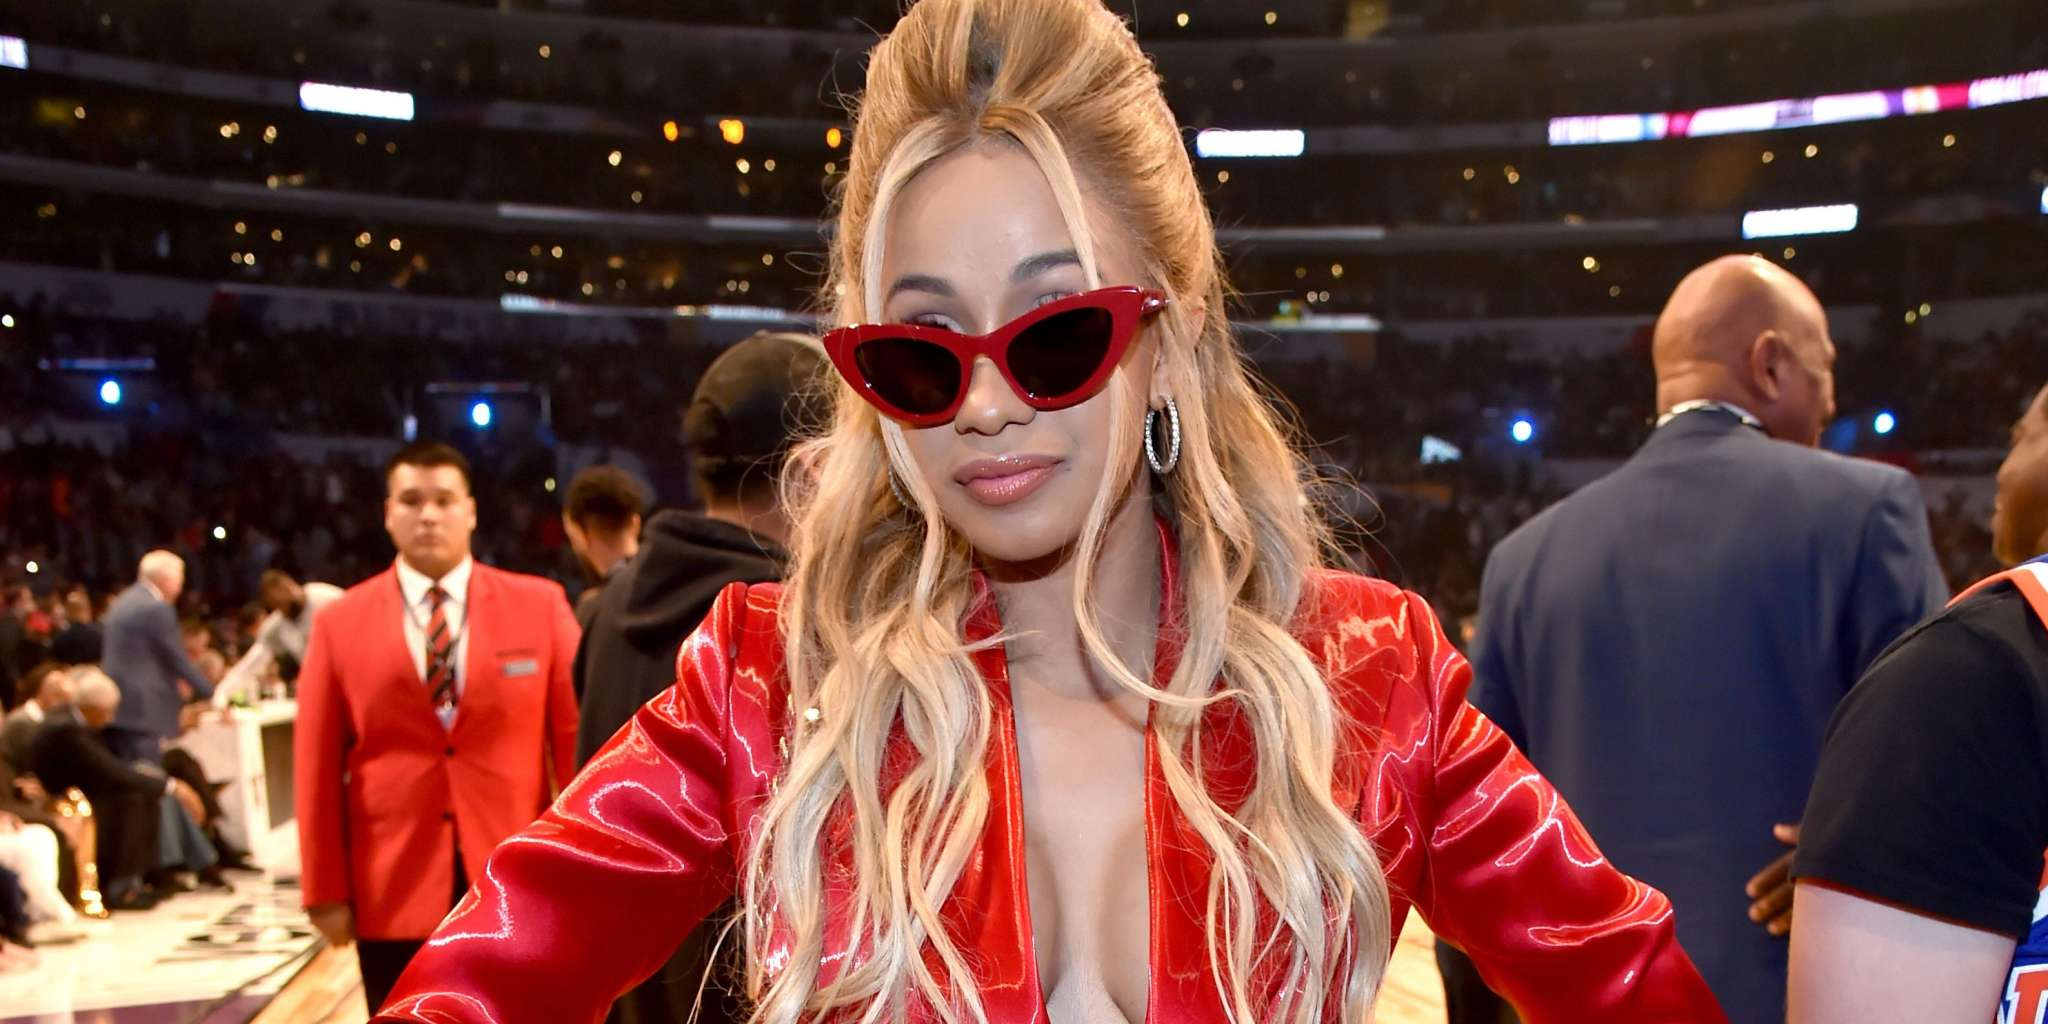 Cardi B Rocks A Jaw-Dropping Blood Red Outfit While Announcing Her New Fashion Nova Collection - Watch The Video